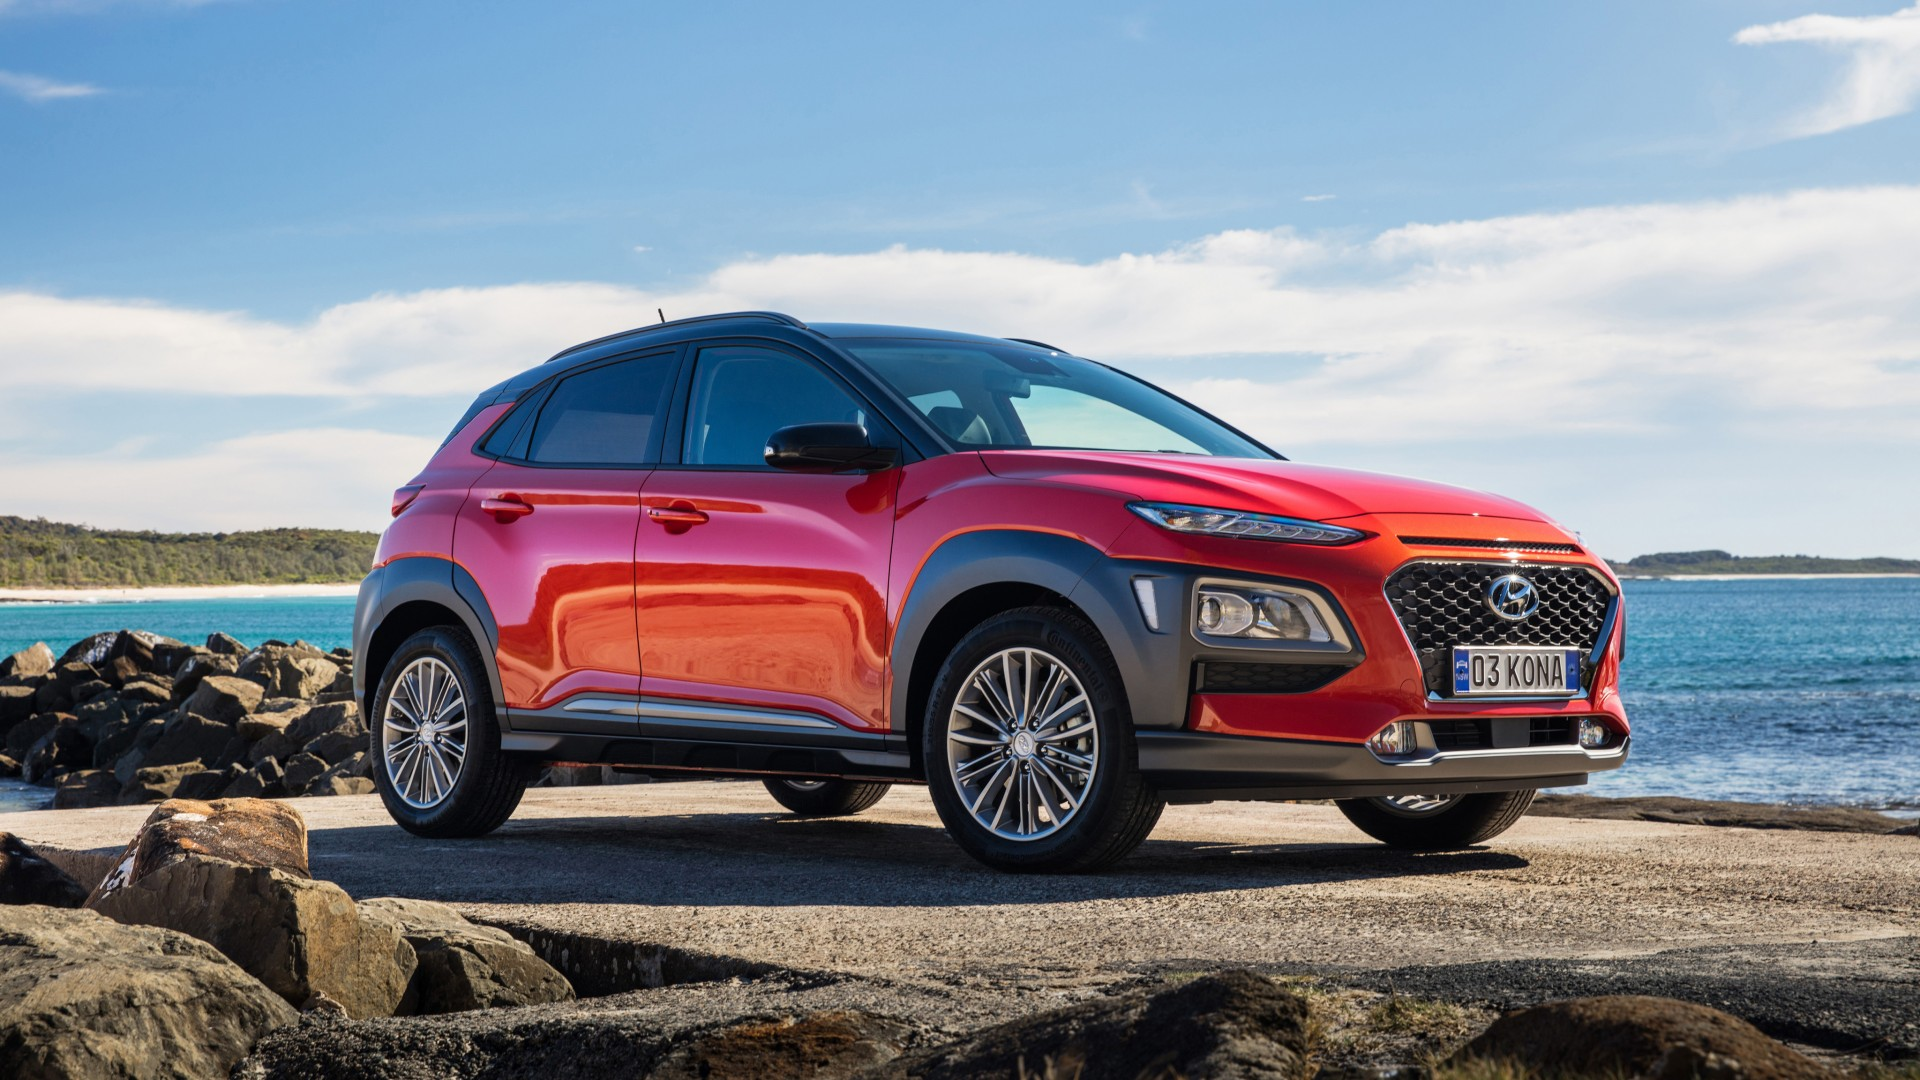 2018 Hyundai Kona 4k 4 Wallpaper Hd Car Wallpapers Id 8816